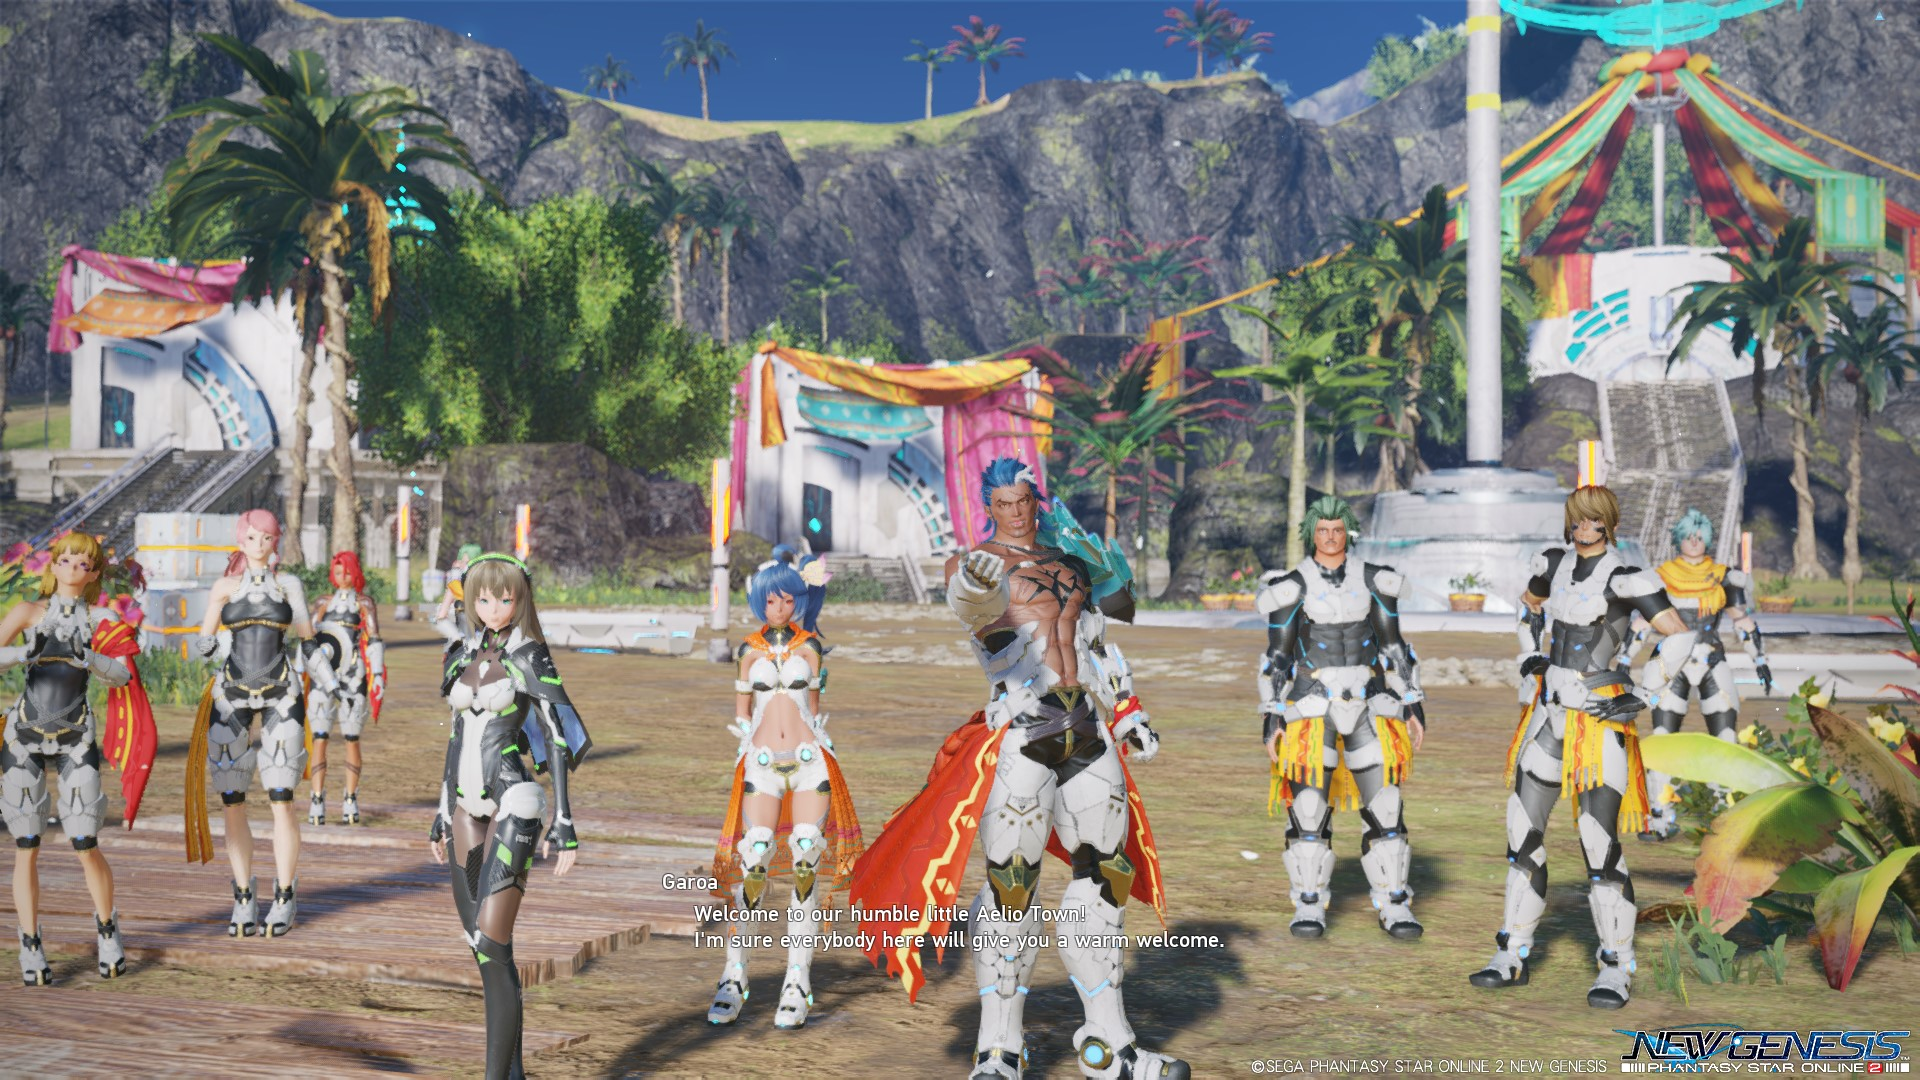 New-Genesis-Phantasy-Star-Online-2 New Genesis Is a Nice Upgrade to Phantasy Star Online 2, but It Needs a Lot of Work If It Wants to Stay Relevant